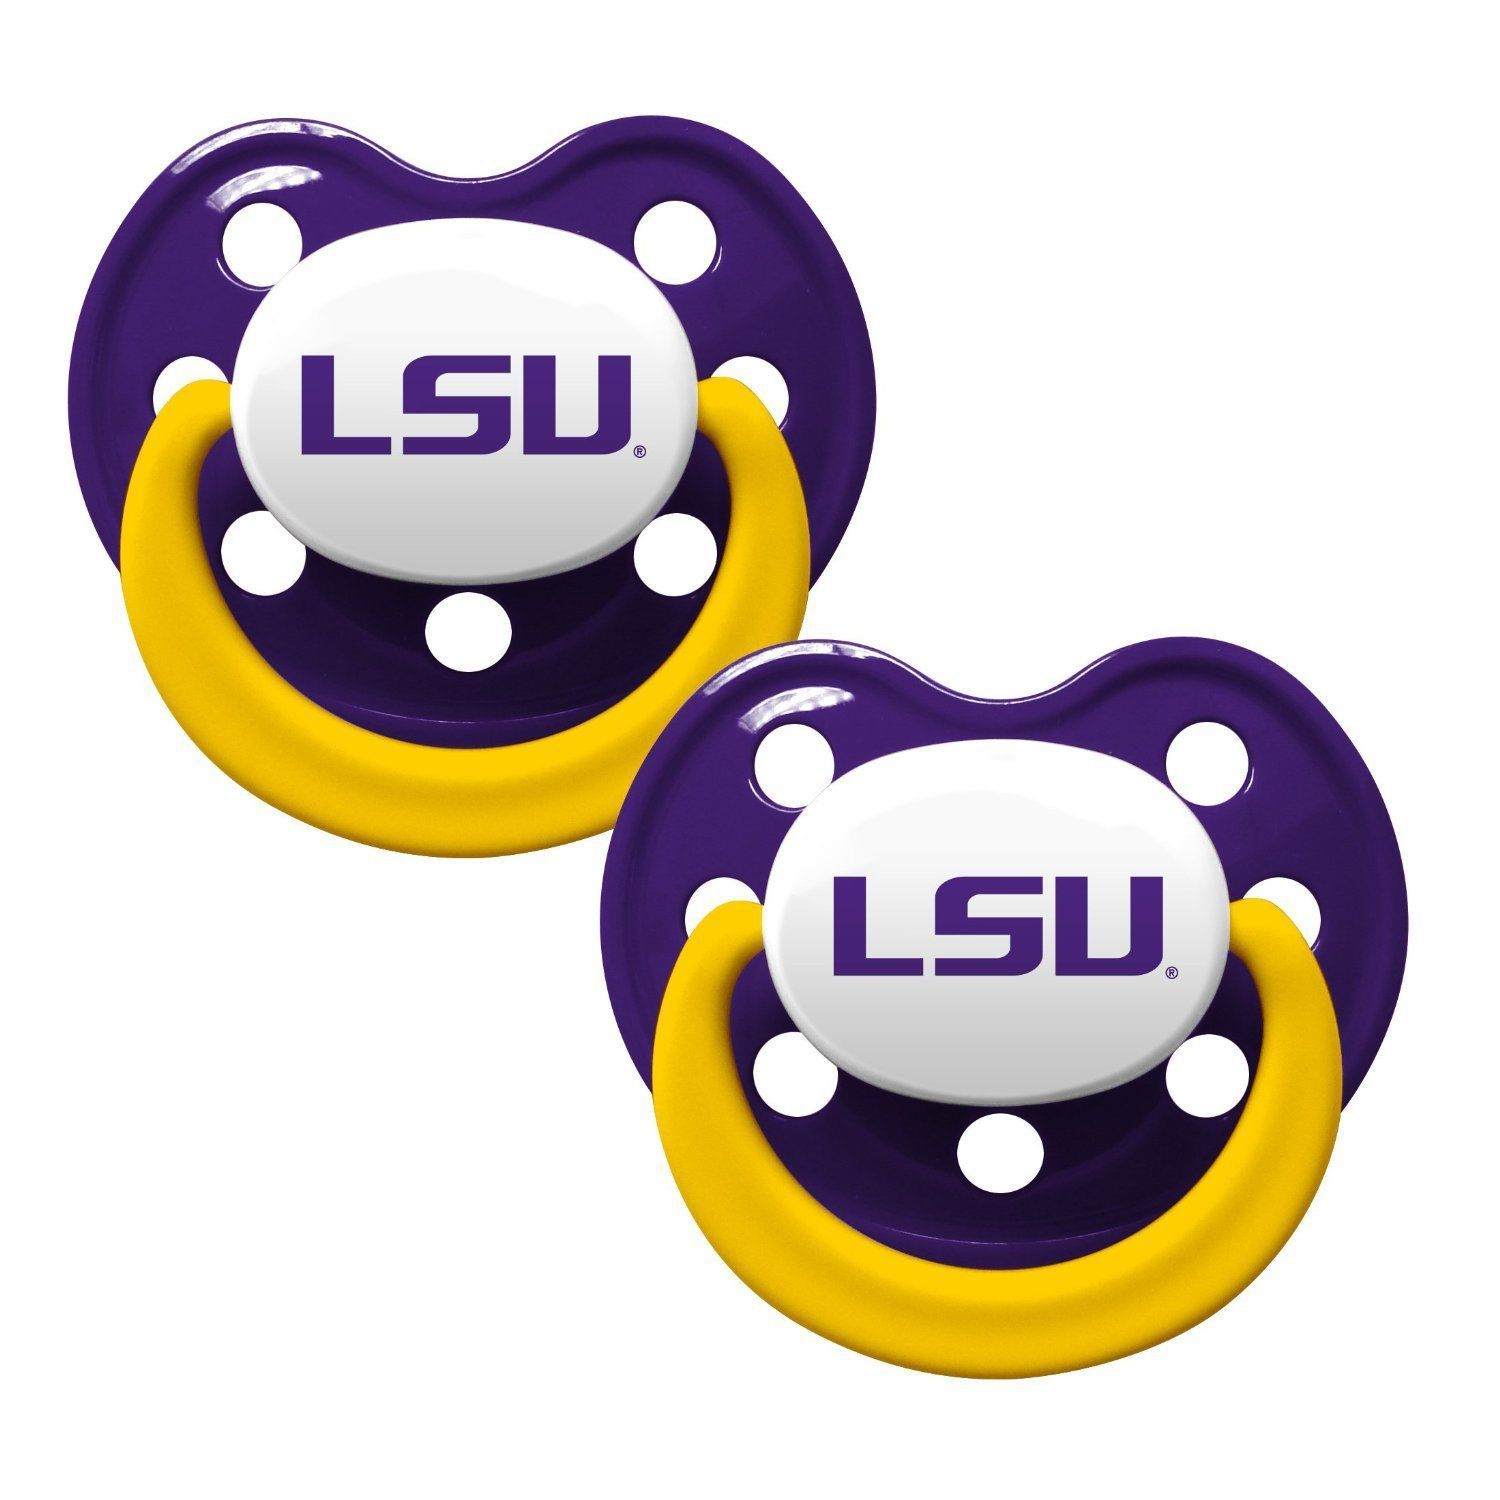 LSU TIGERS 2-PACK BABY INFANT ORTHODONTIC PACIFIER SET NCAA